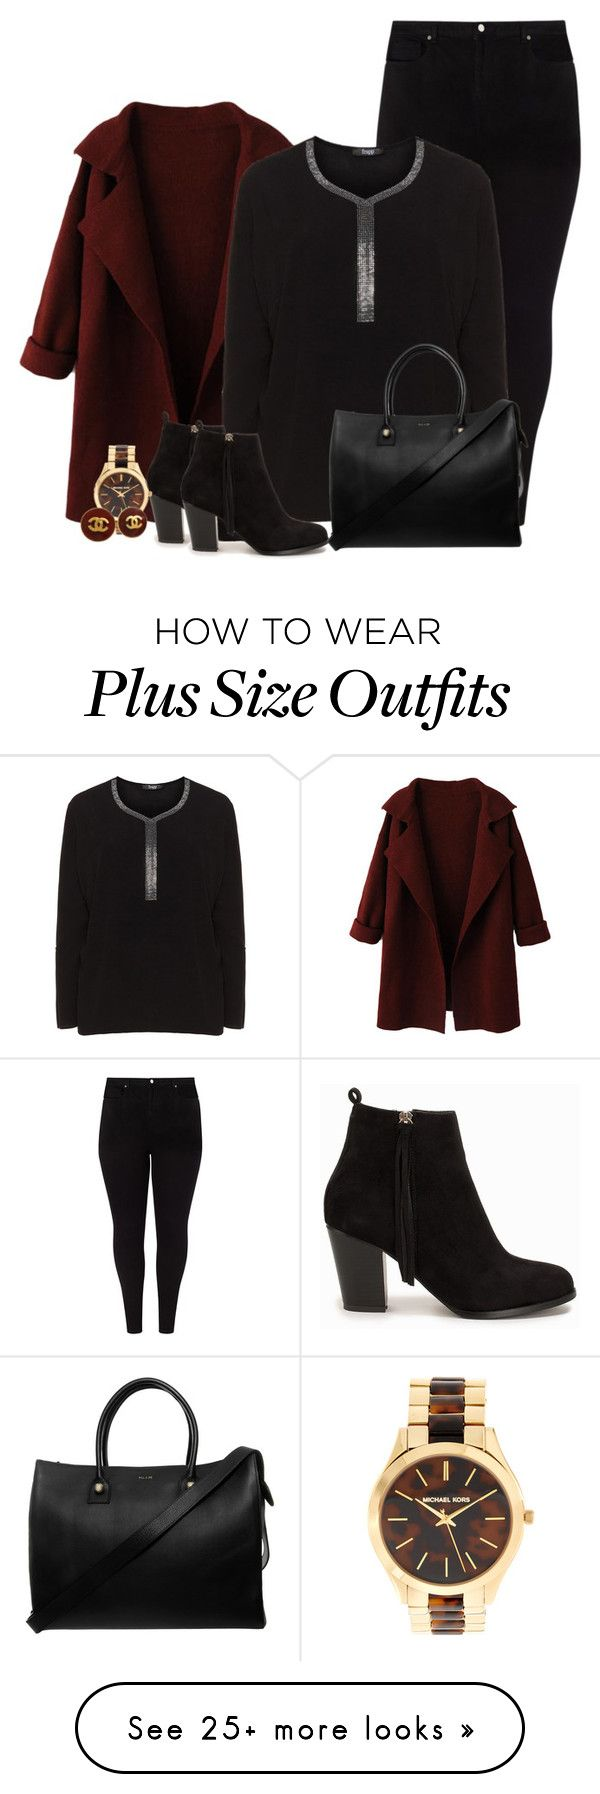 """plus size outfit"" by hitthisfeeling on Polyvore featuring Studio 8, Frapp, Nly Shoes, Michael Kors, Chanel, Paul & Joe, plussize and plussizefashion"